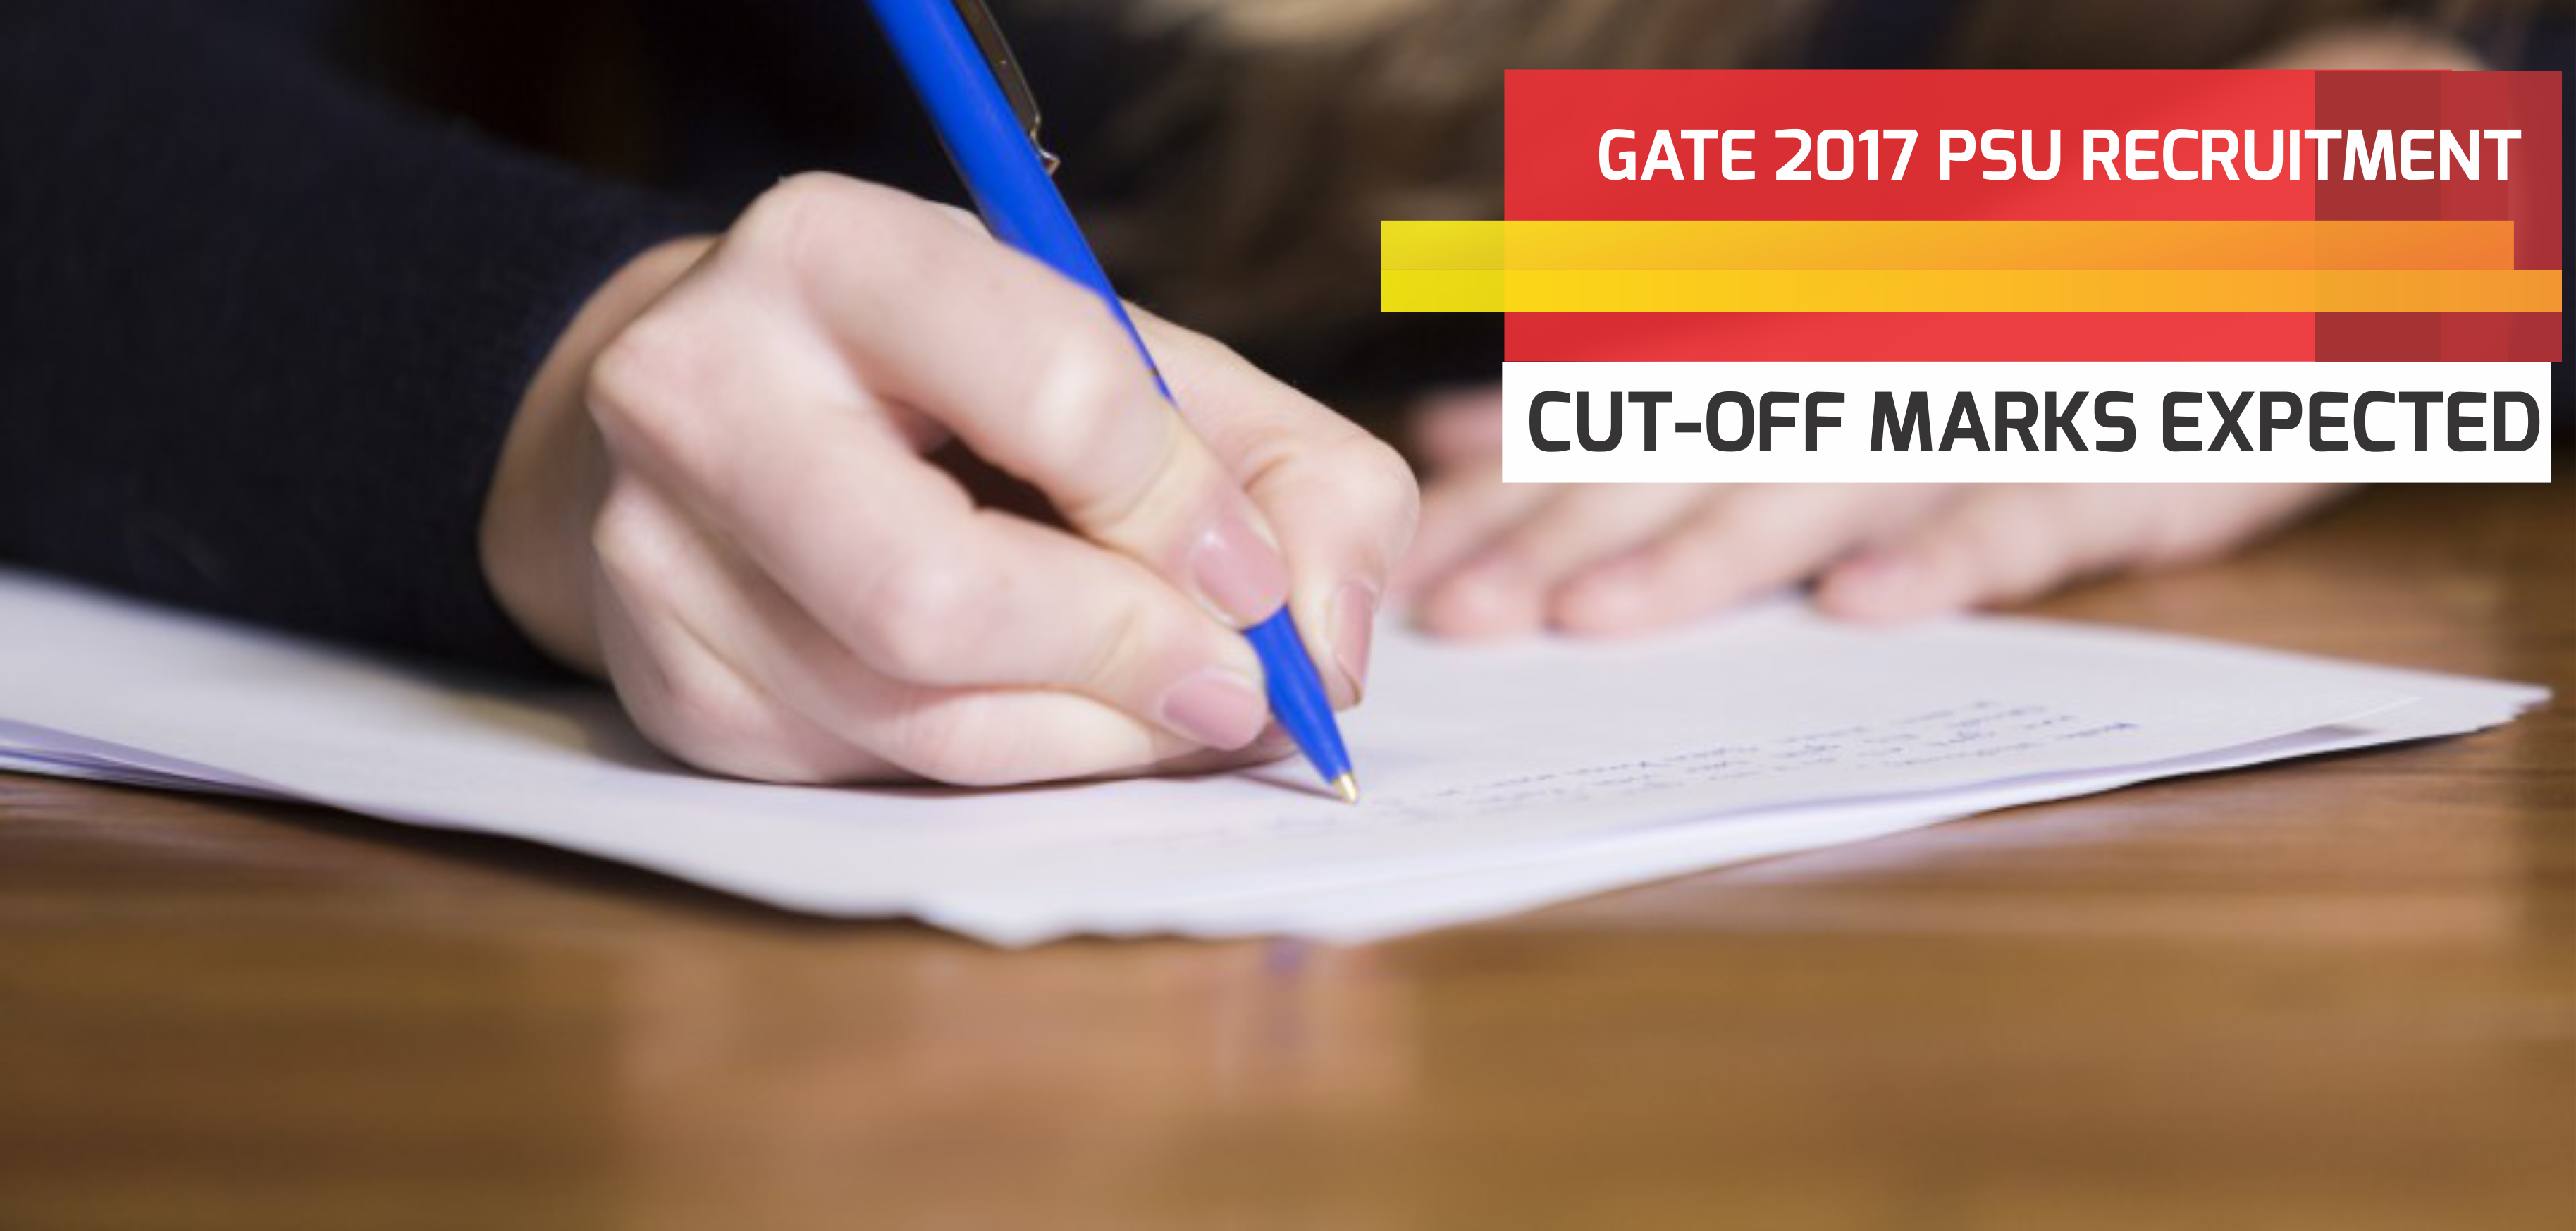 Expected GATE Cut-Off For PSU Recruitment 2017